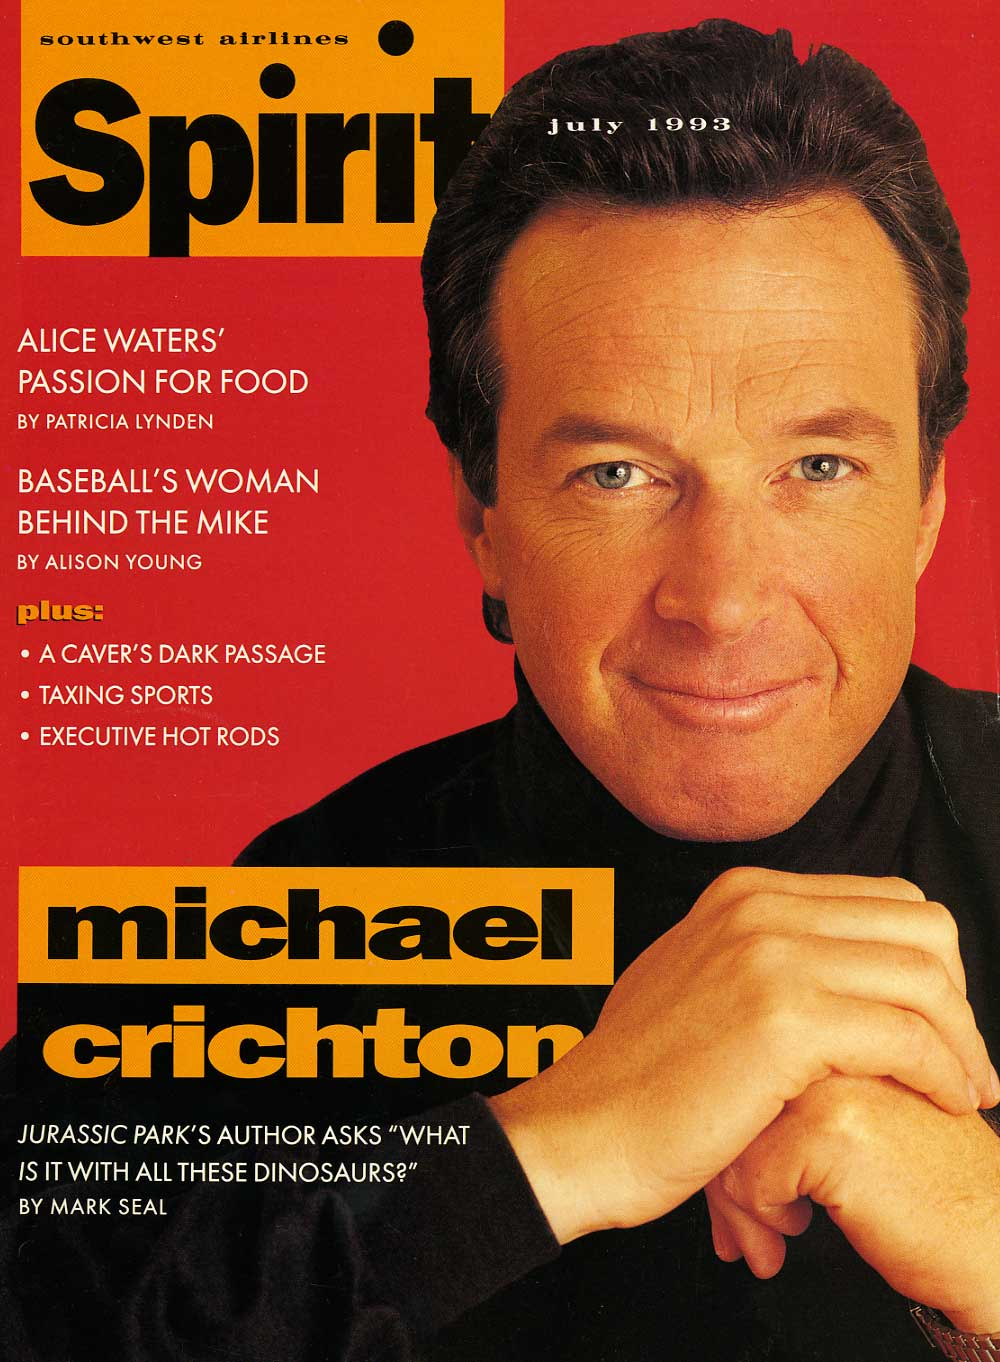 Michael Crichton in Southwest Airlines Spirit Magazine - 1973